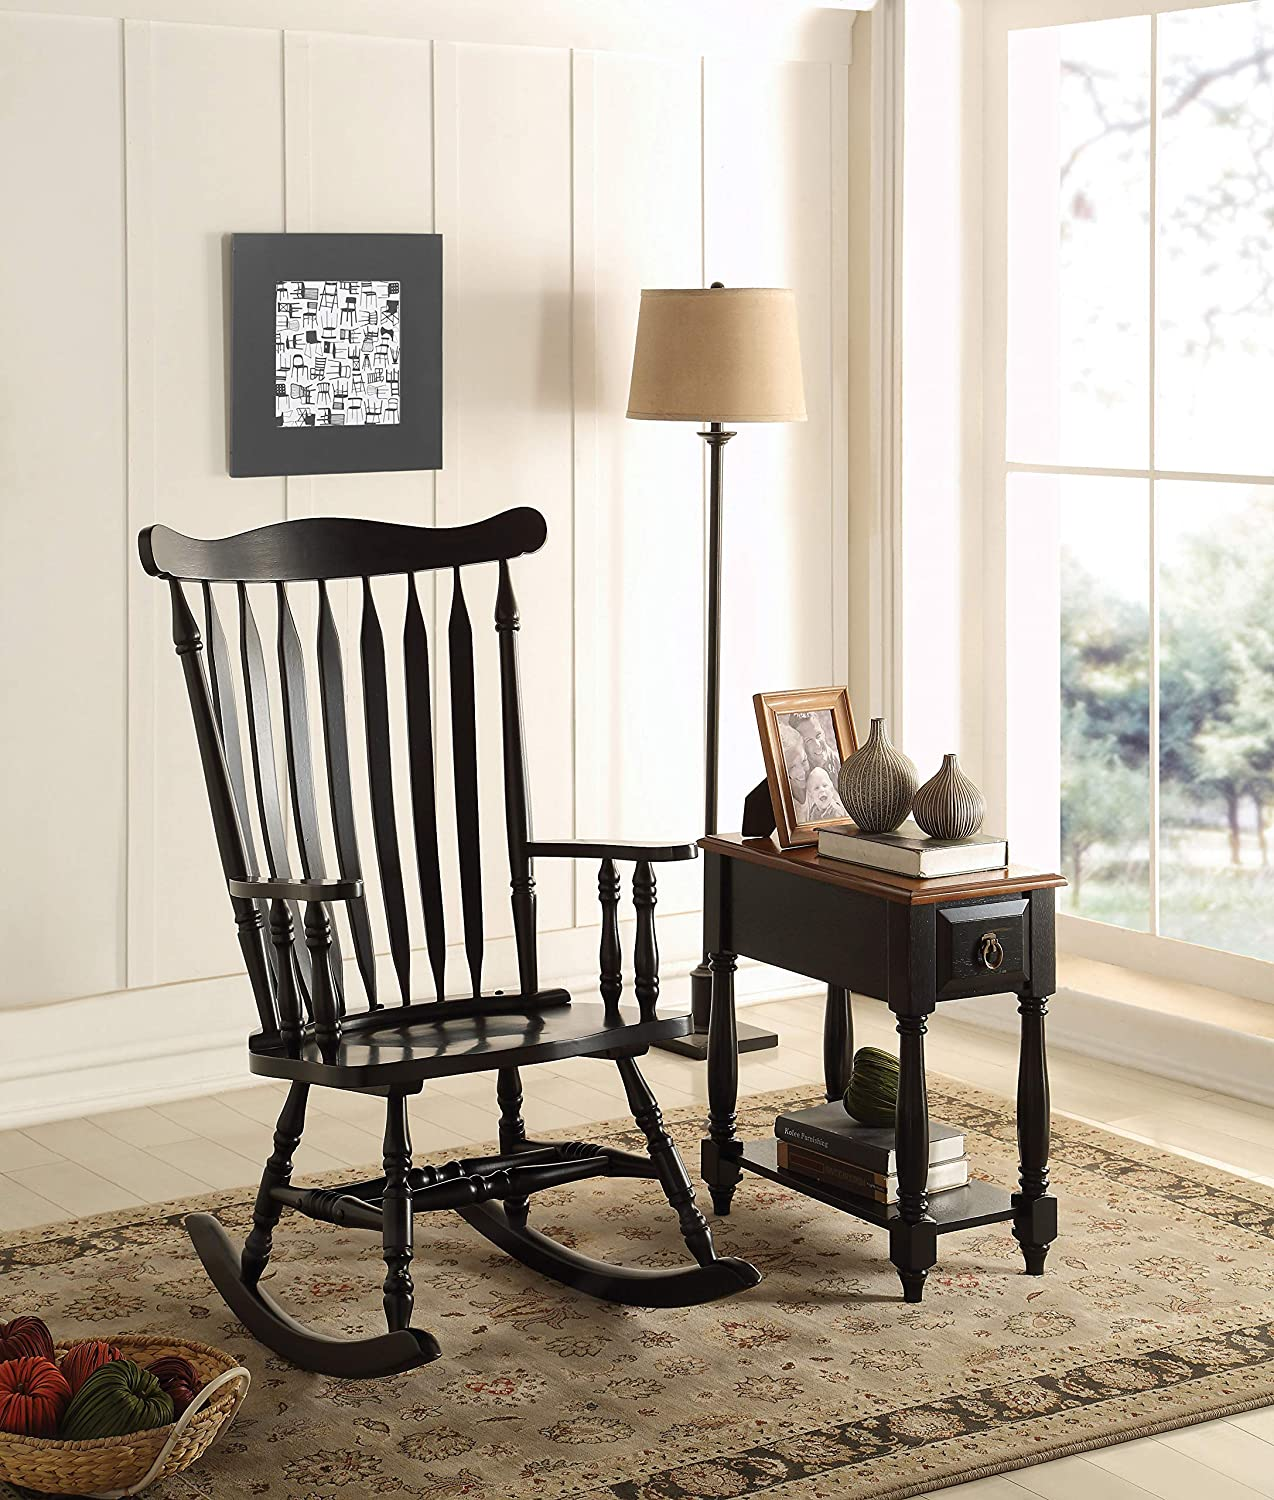 ACME Furniture 59211 Kloris Rocking Chair, Black